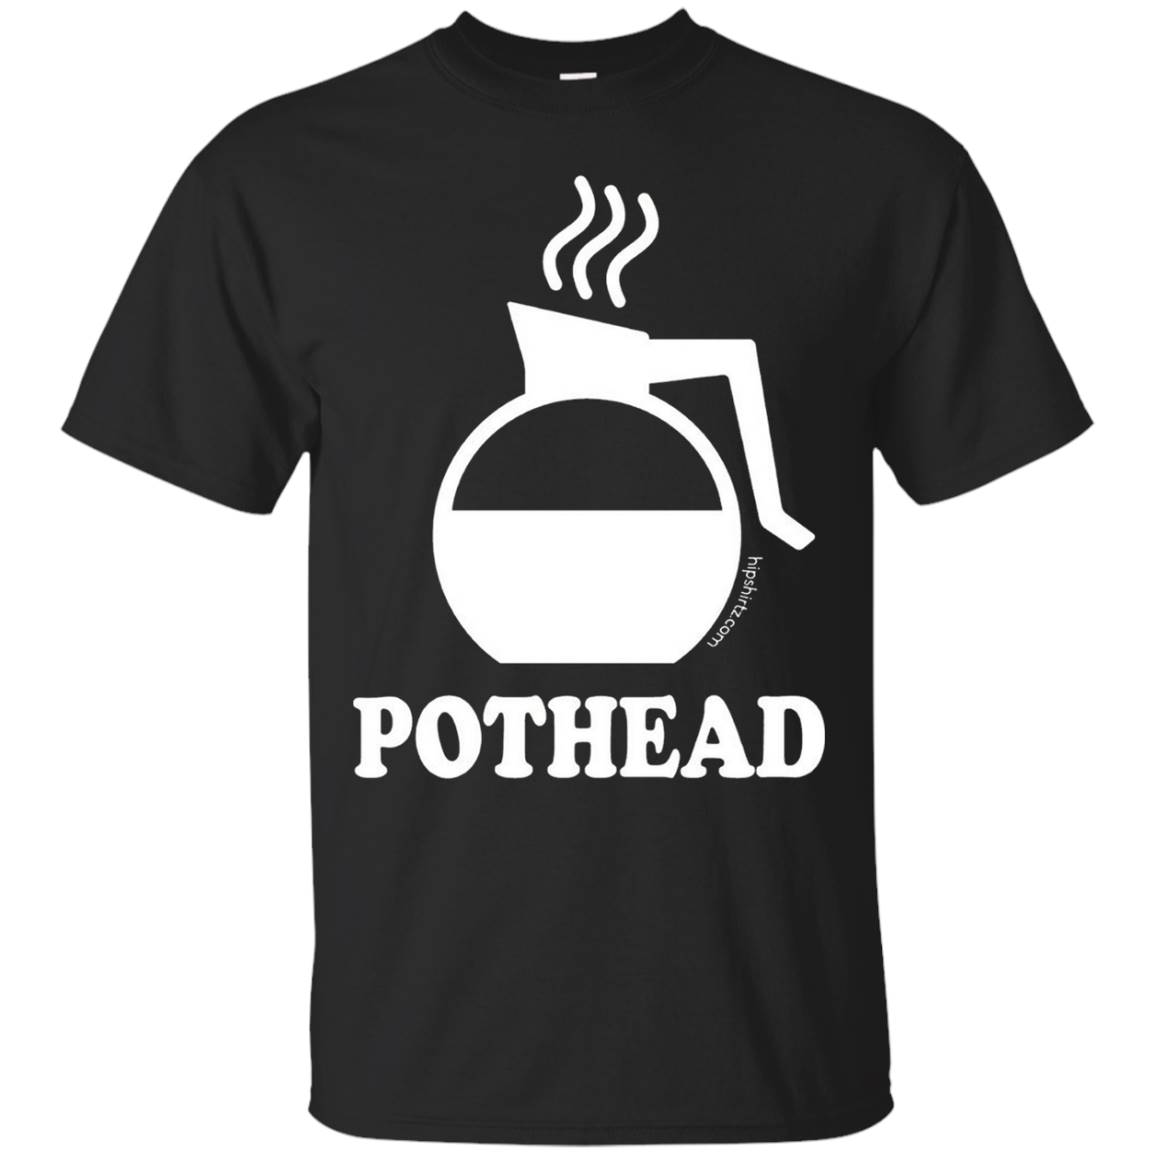 Pothead Coffee Lovers funny tee shirt